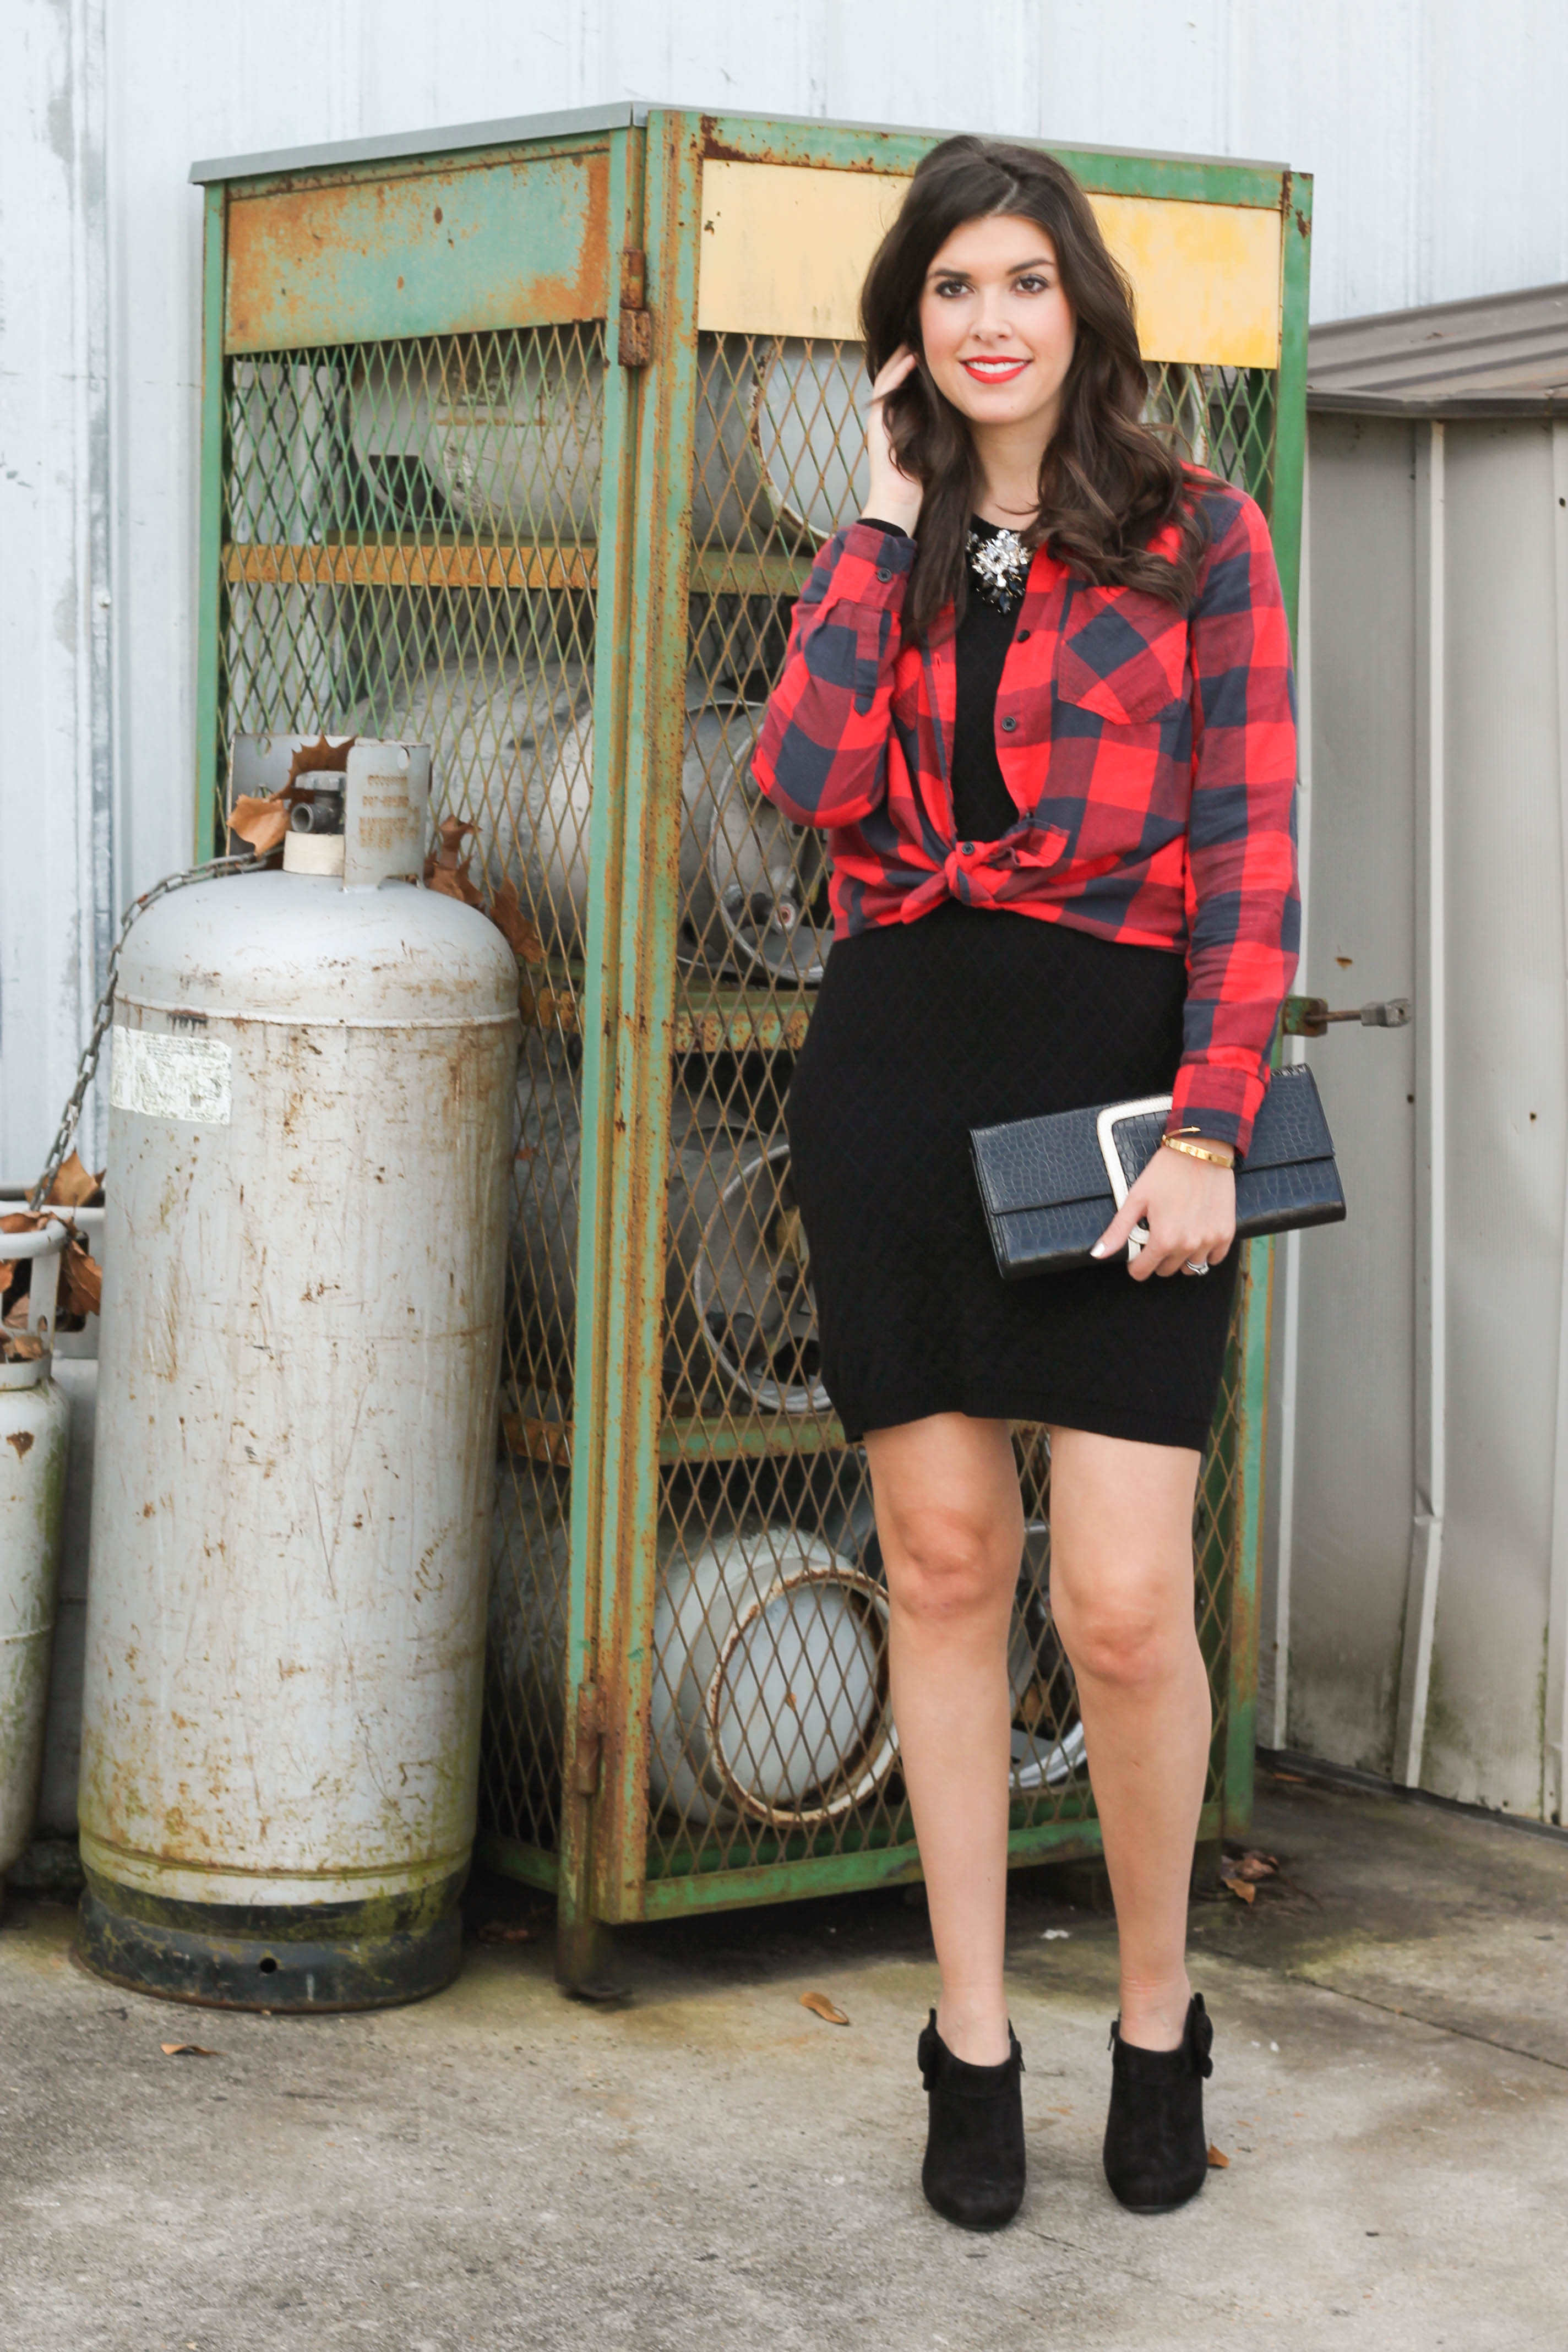 2015-12-06 13.29.15 - Holiday Glam + Buffalo Red Plaid Shirt by New York fashion blogger